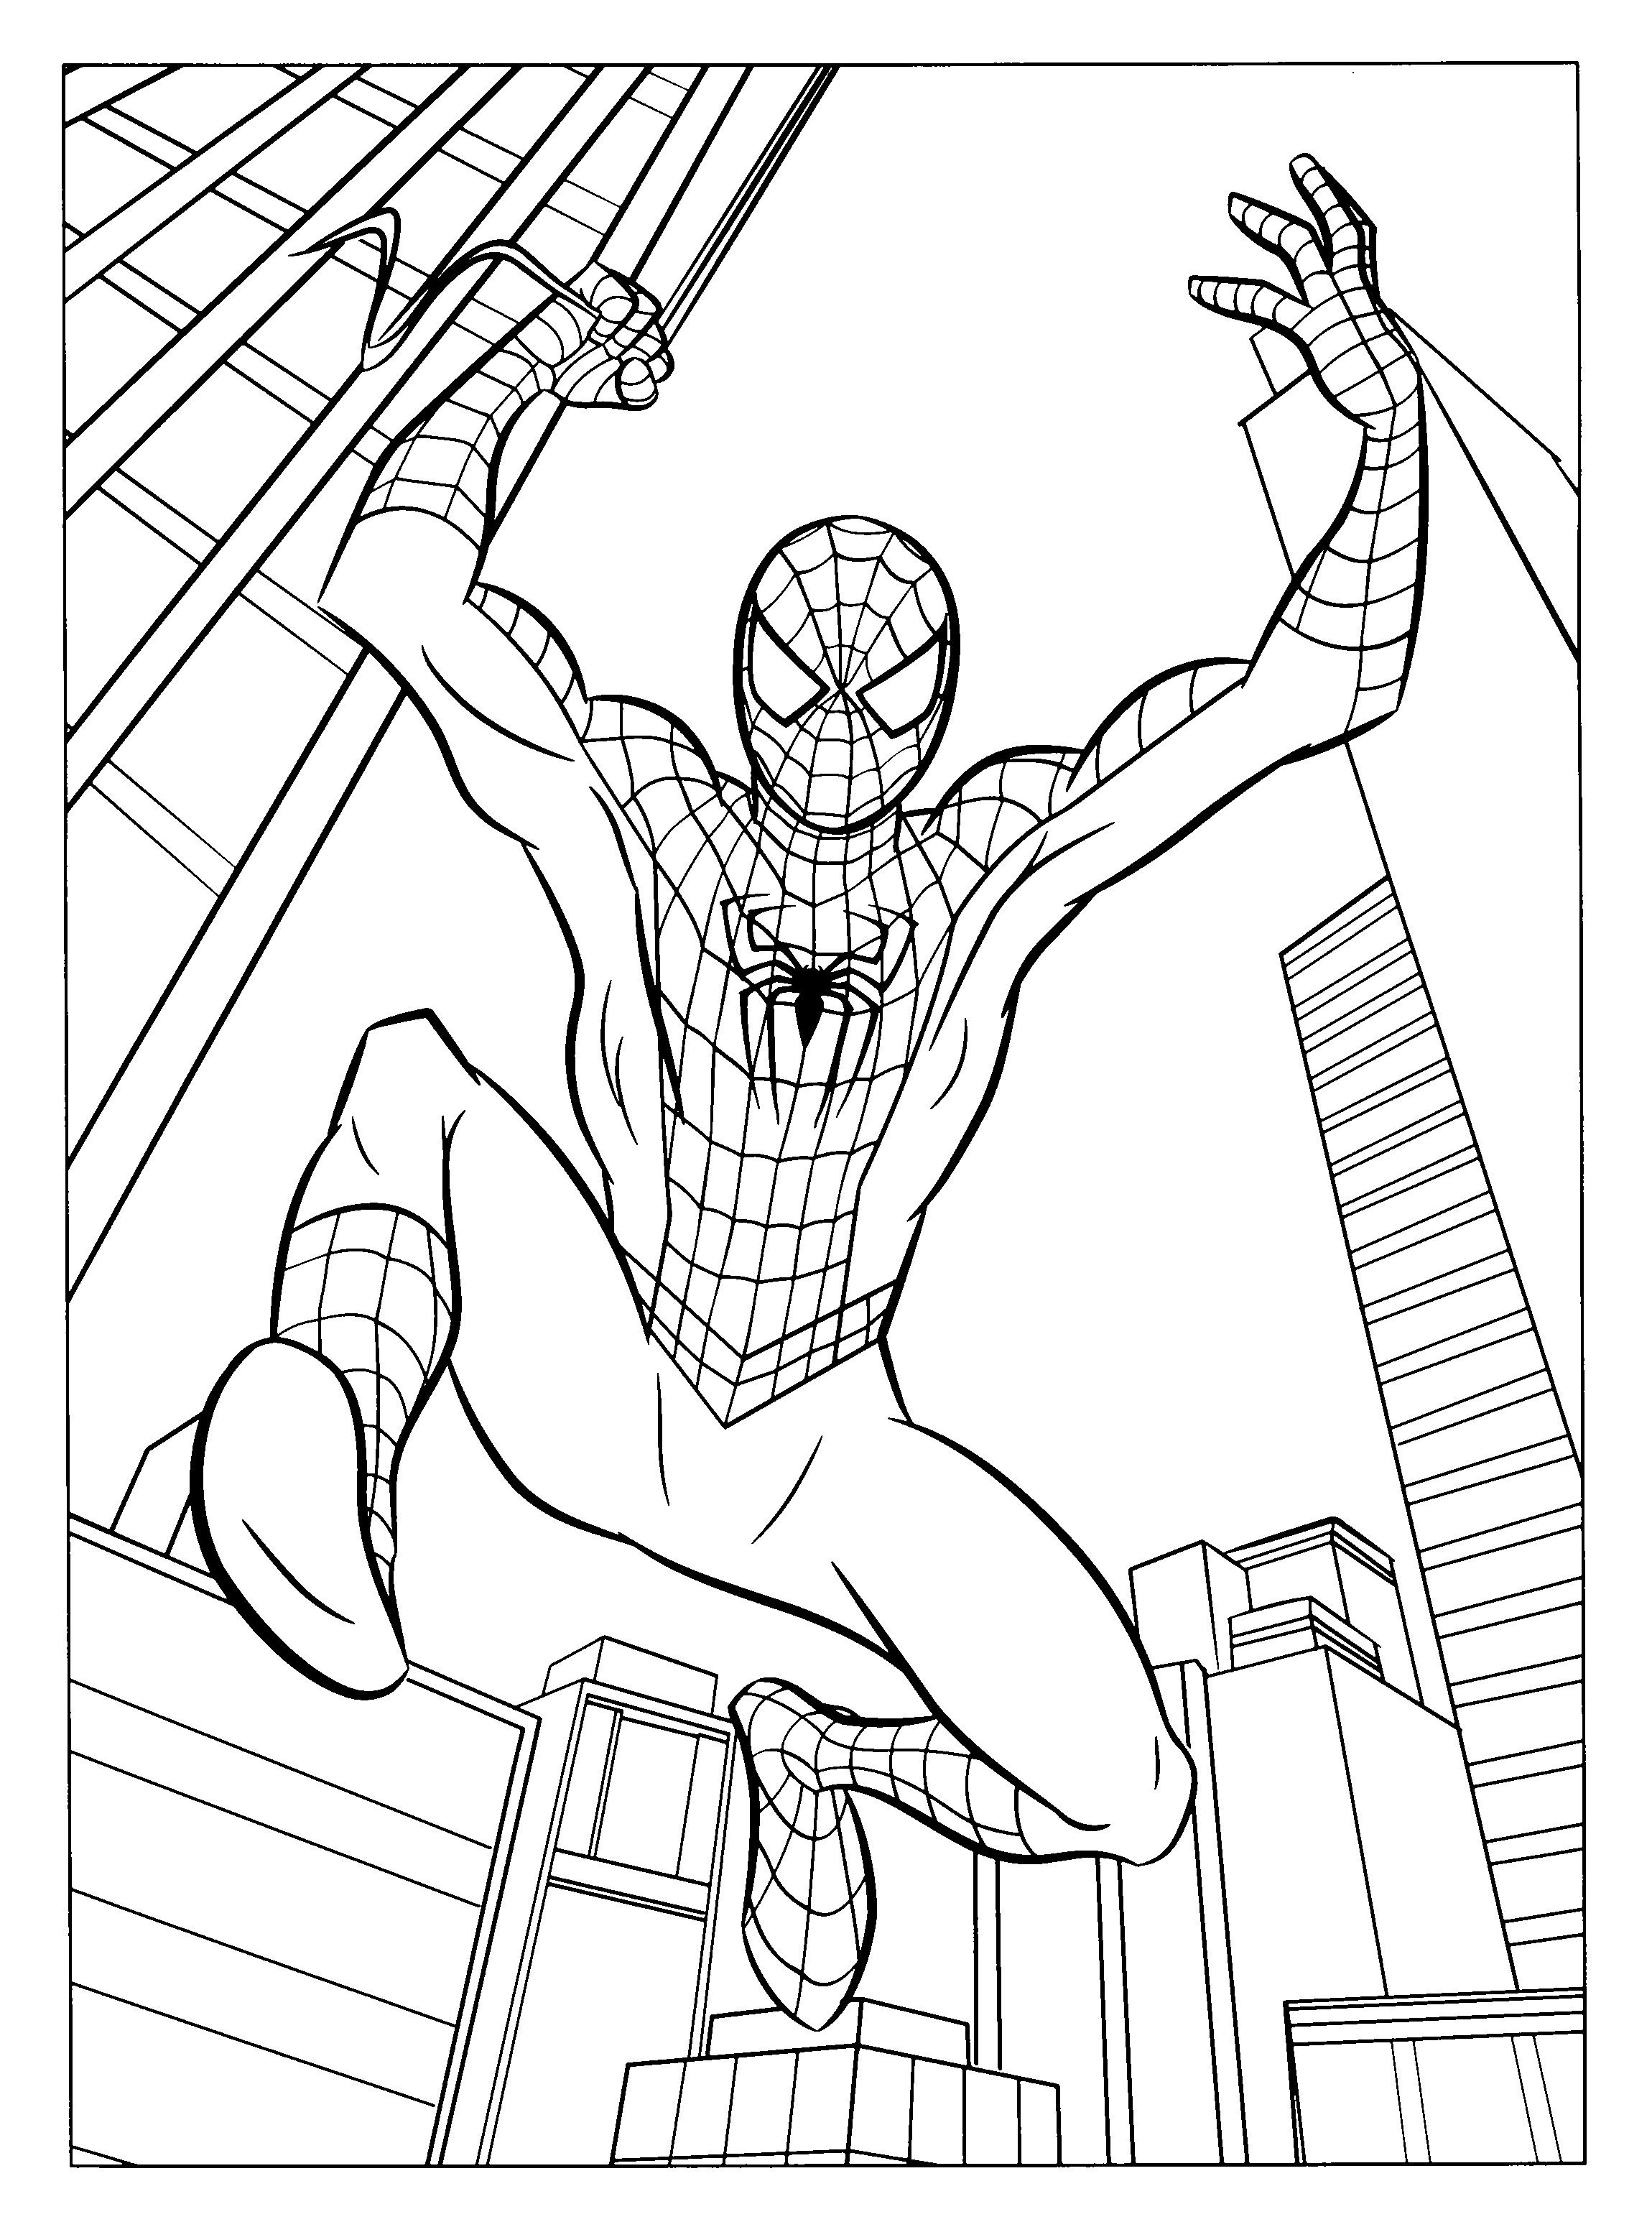 Free Printable Spiderman Coloring Pages For Kids | Spiderman ...